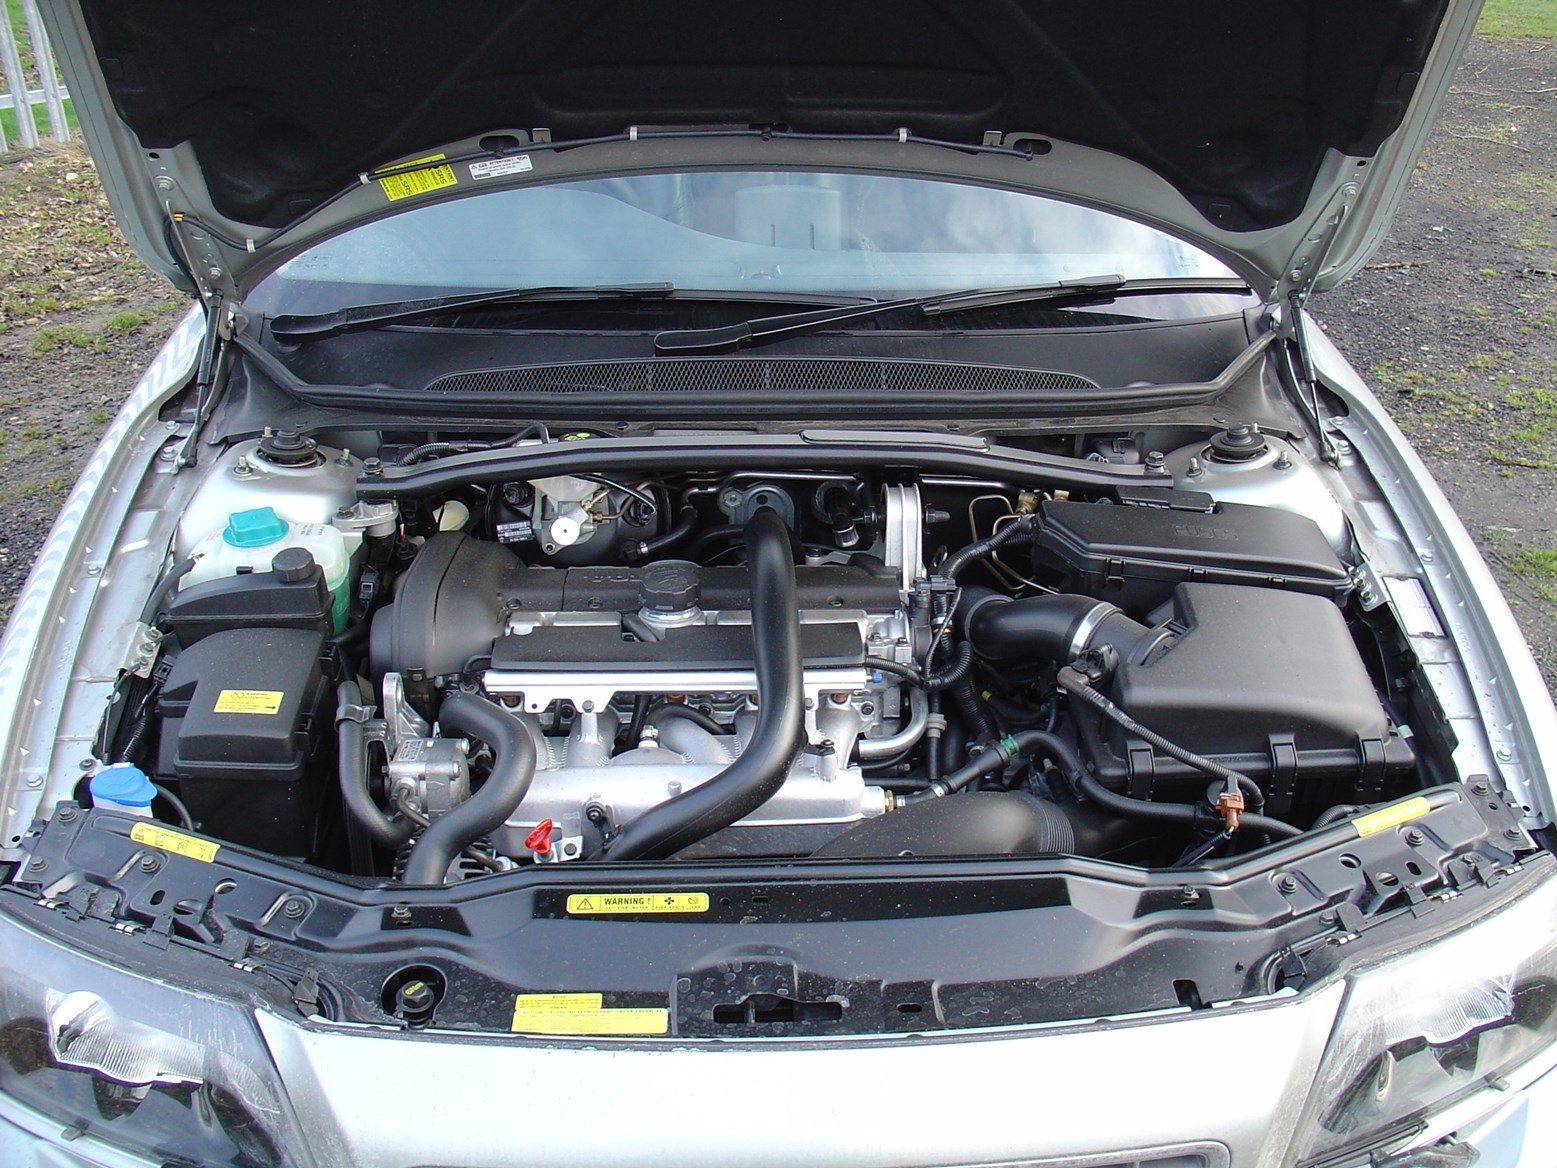 volvo c30 engine compartment diagram 08 chrysler pacifica